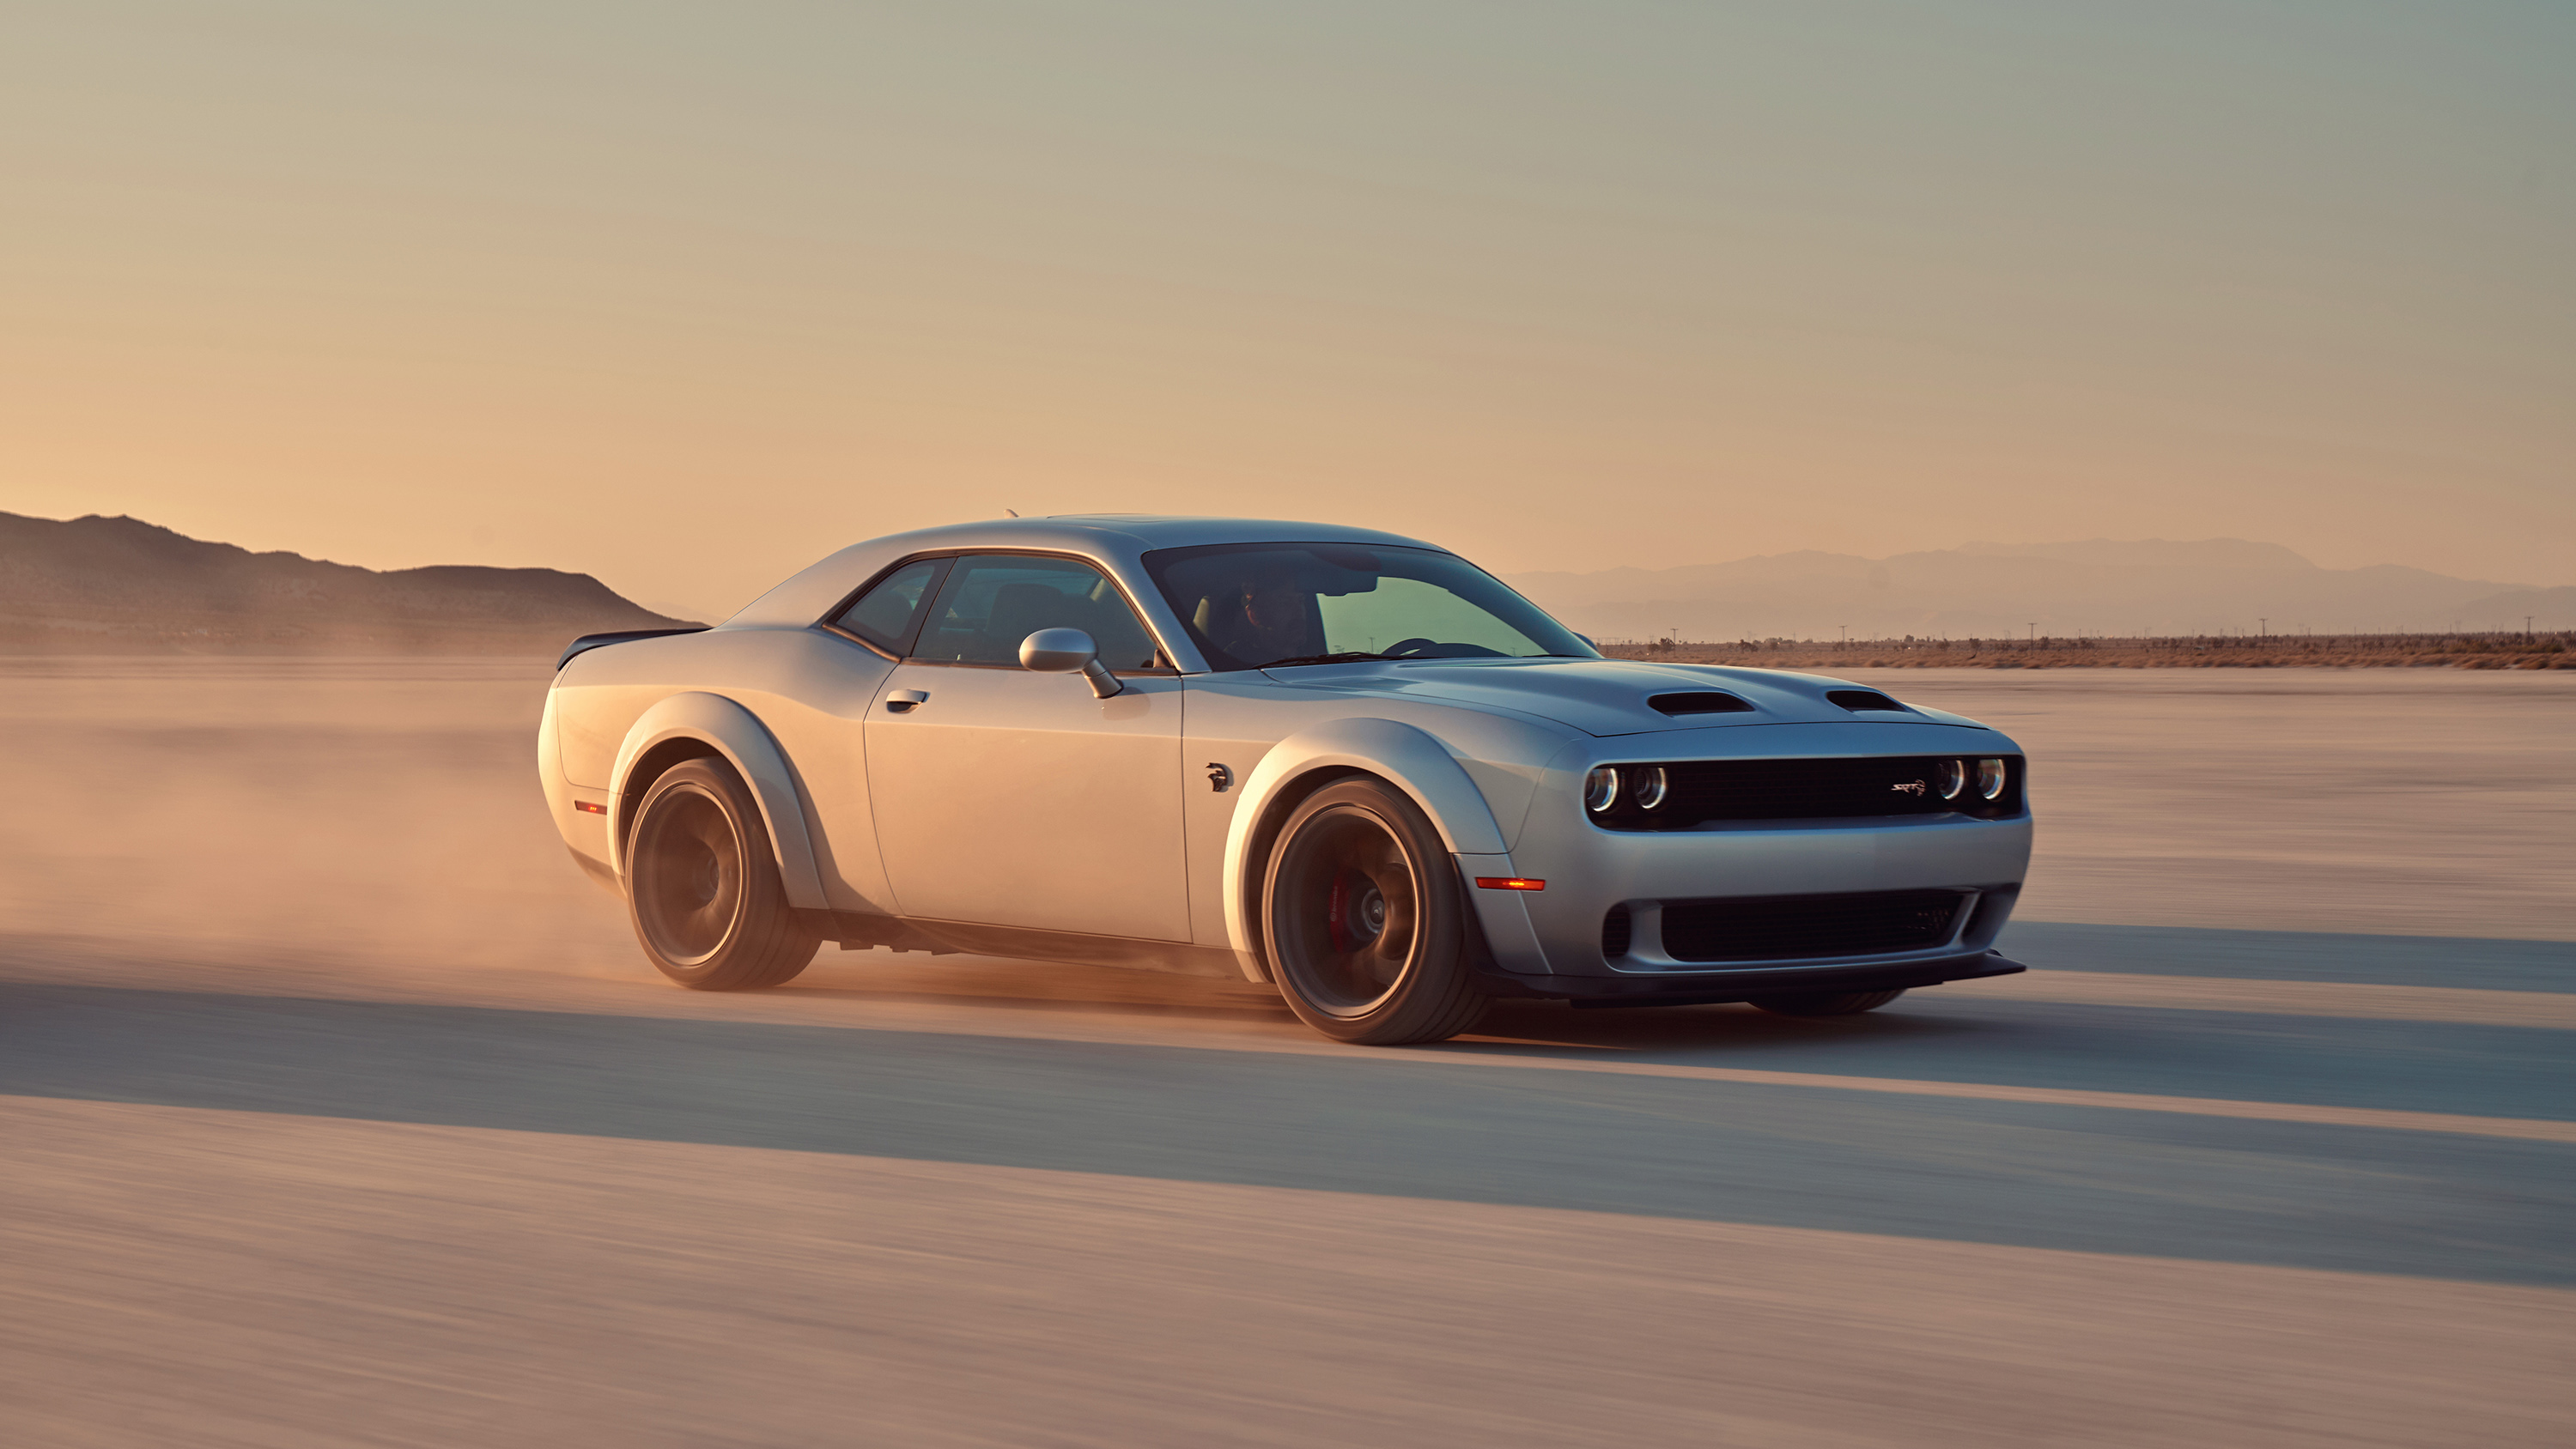 2019 Dodge Challenger Srt Hellcat Redeye Widebody Wallpaper Hd Car Wallpapers Id 10718